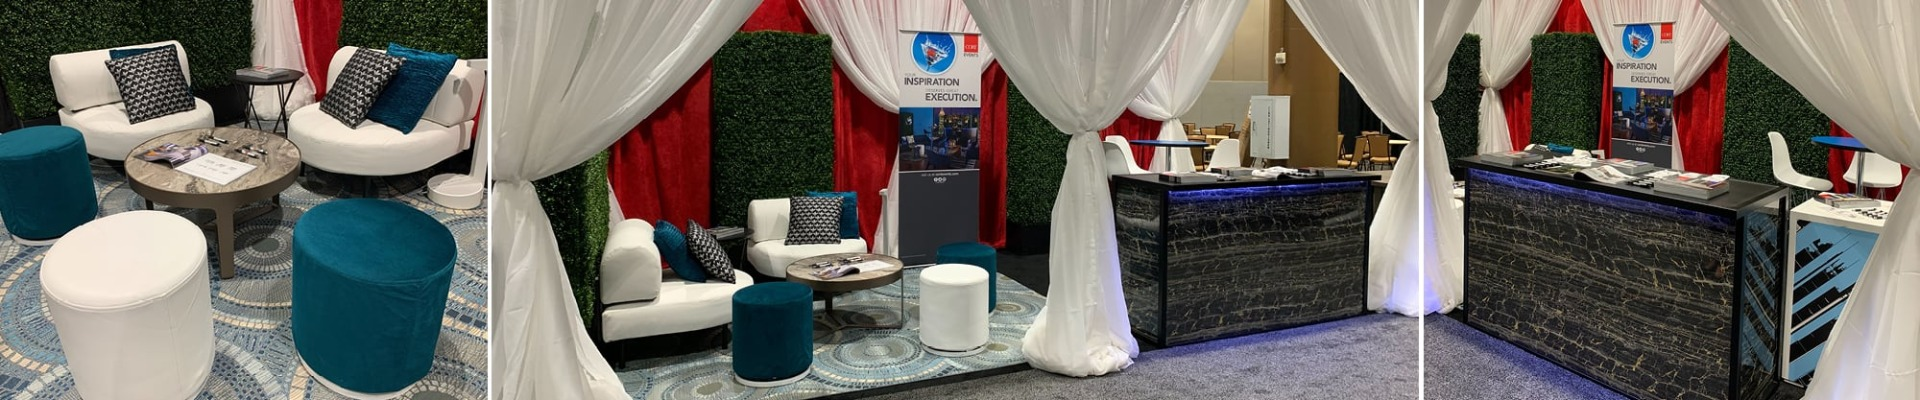 booth with white and teal furniture